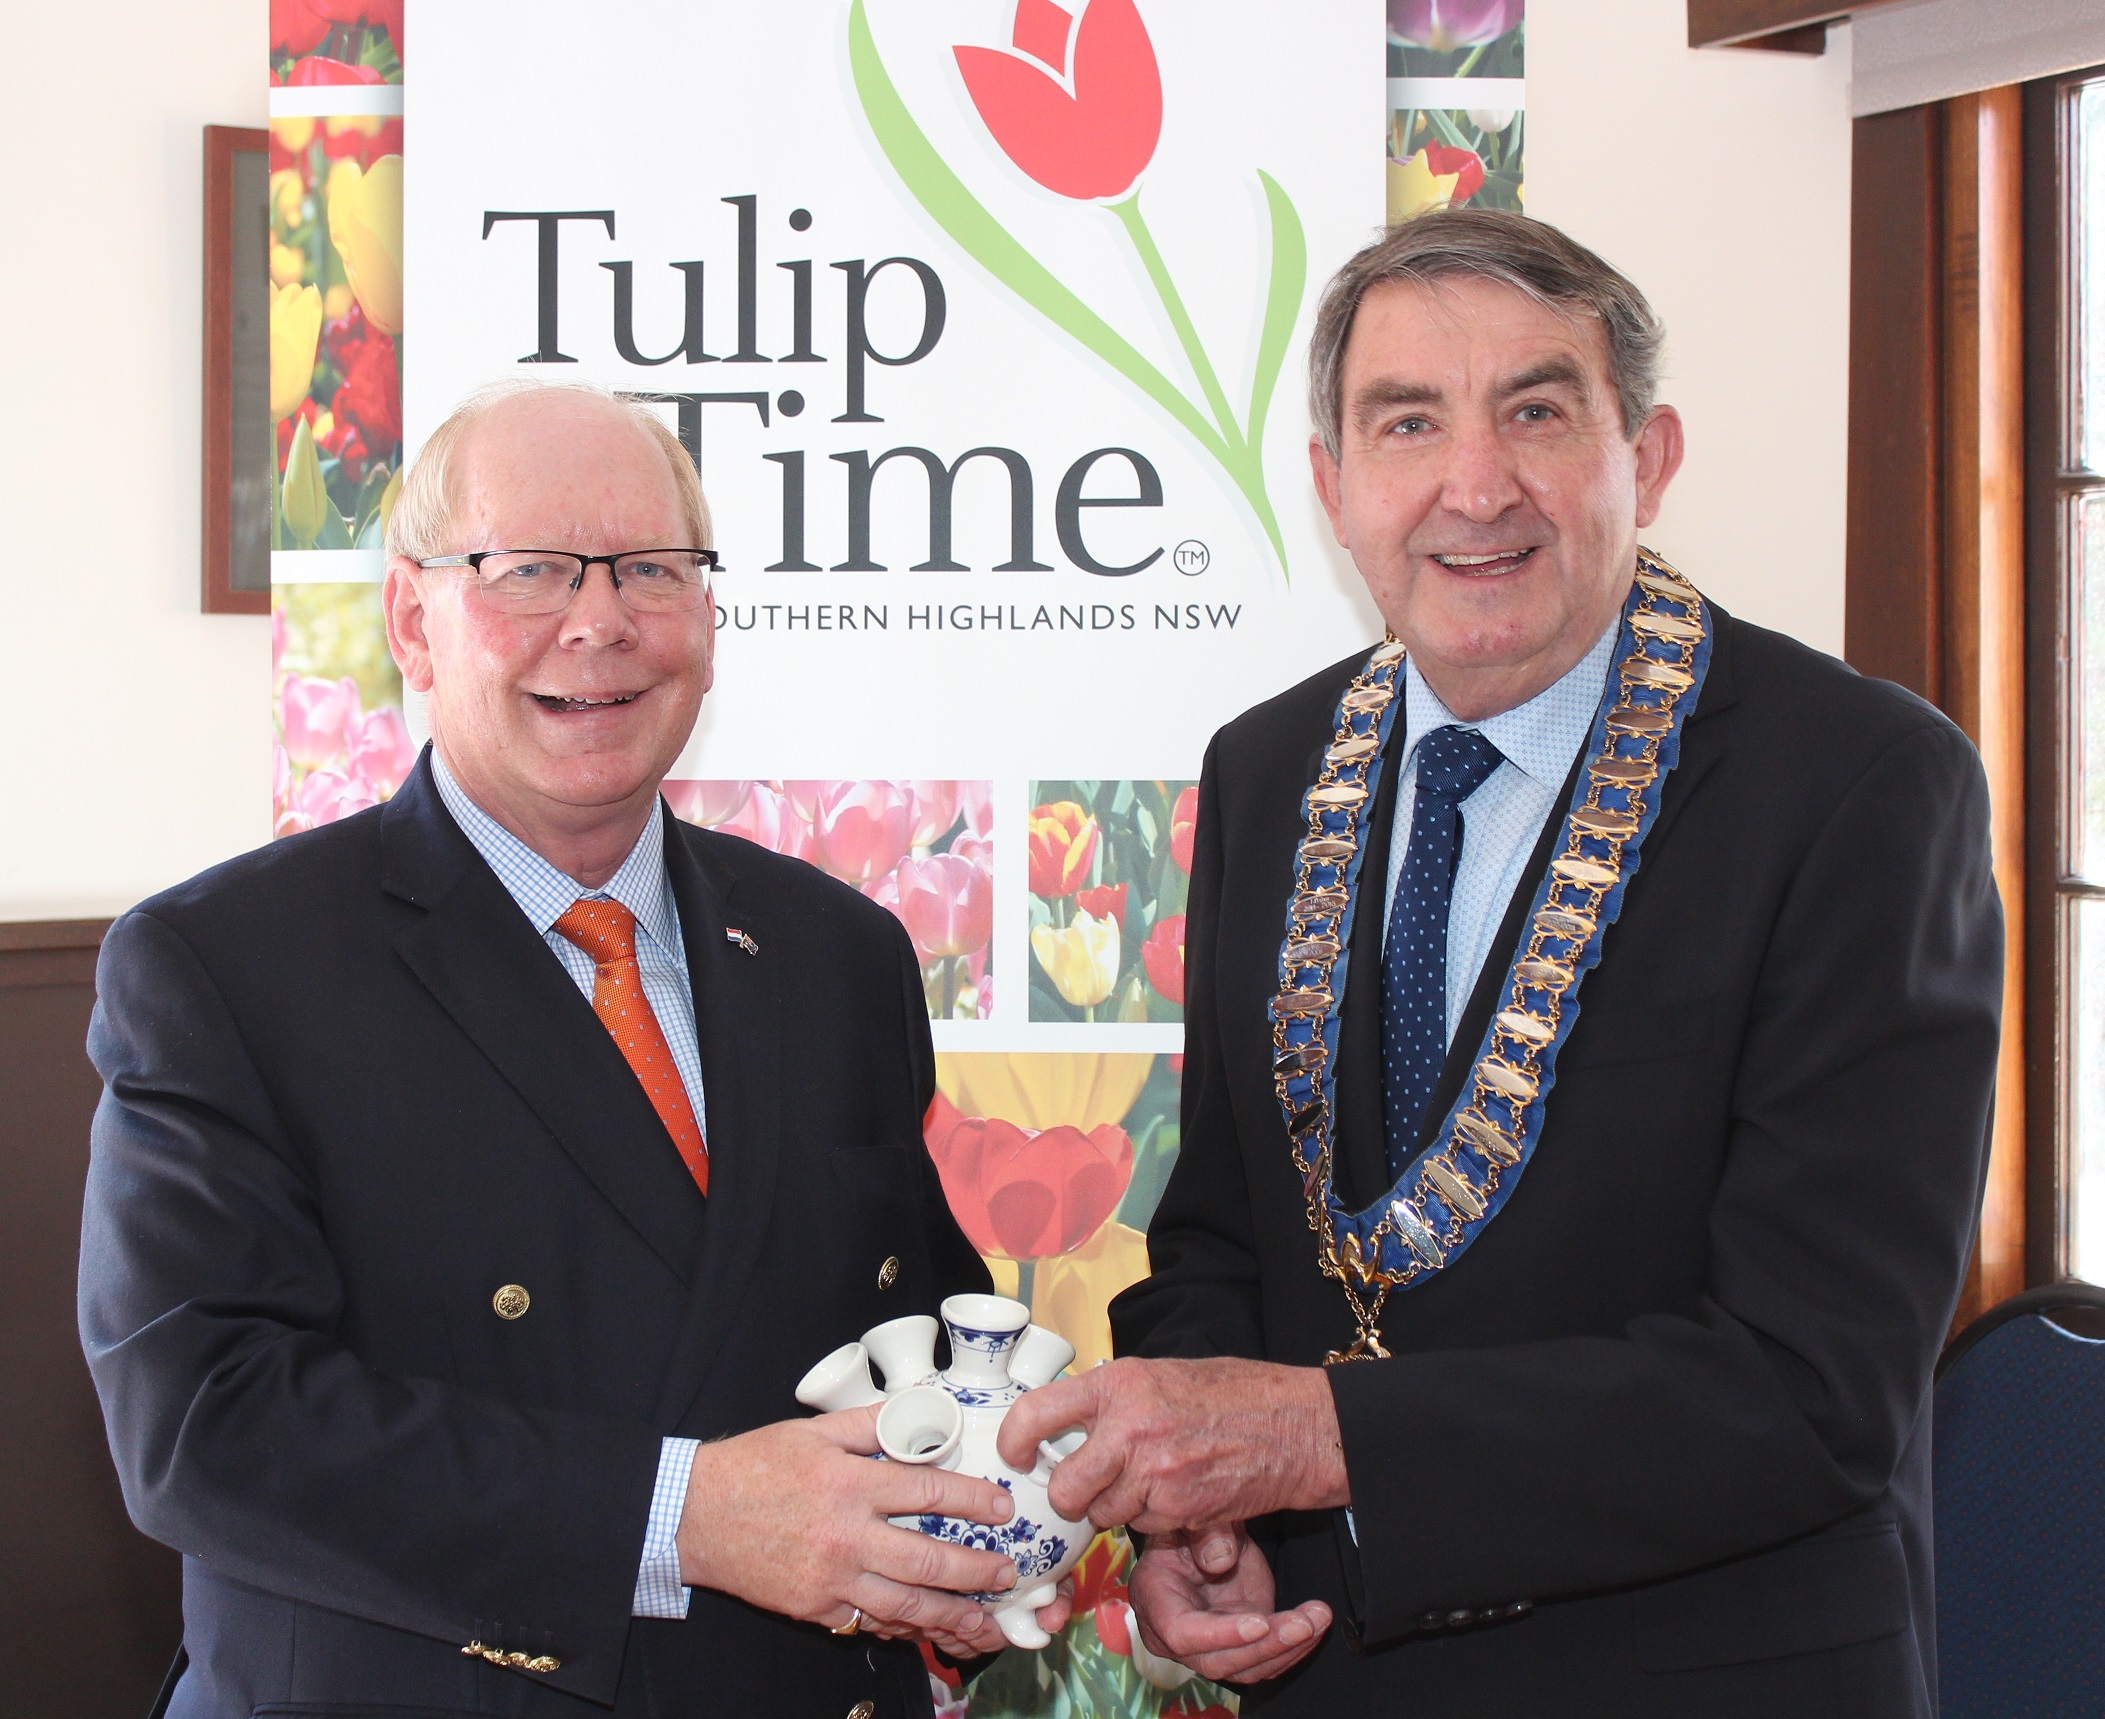 Mr Neuhaus presented Mayor Gair with a porcelain tulip vase from Holland